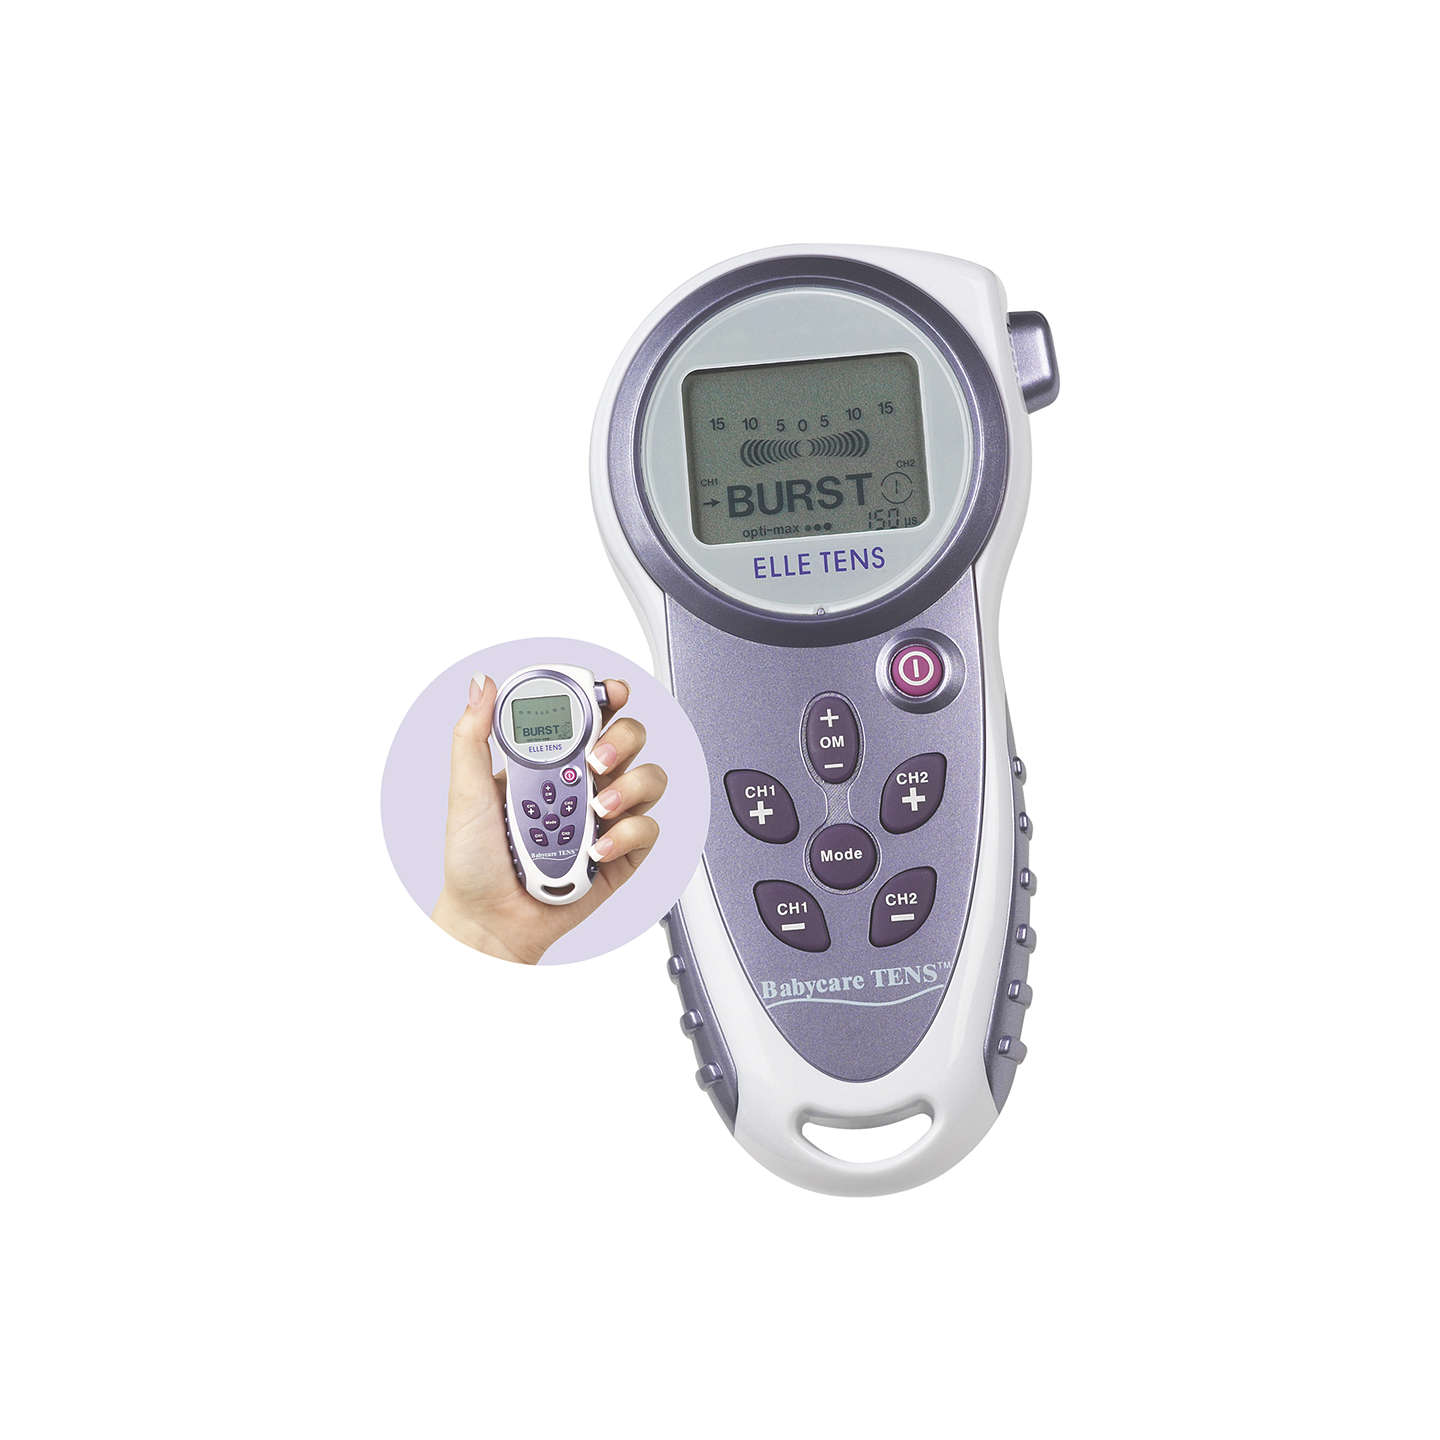 BuyBodyclock Elle TENS Machine Online at johnlewis.com